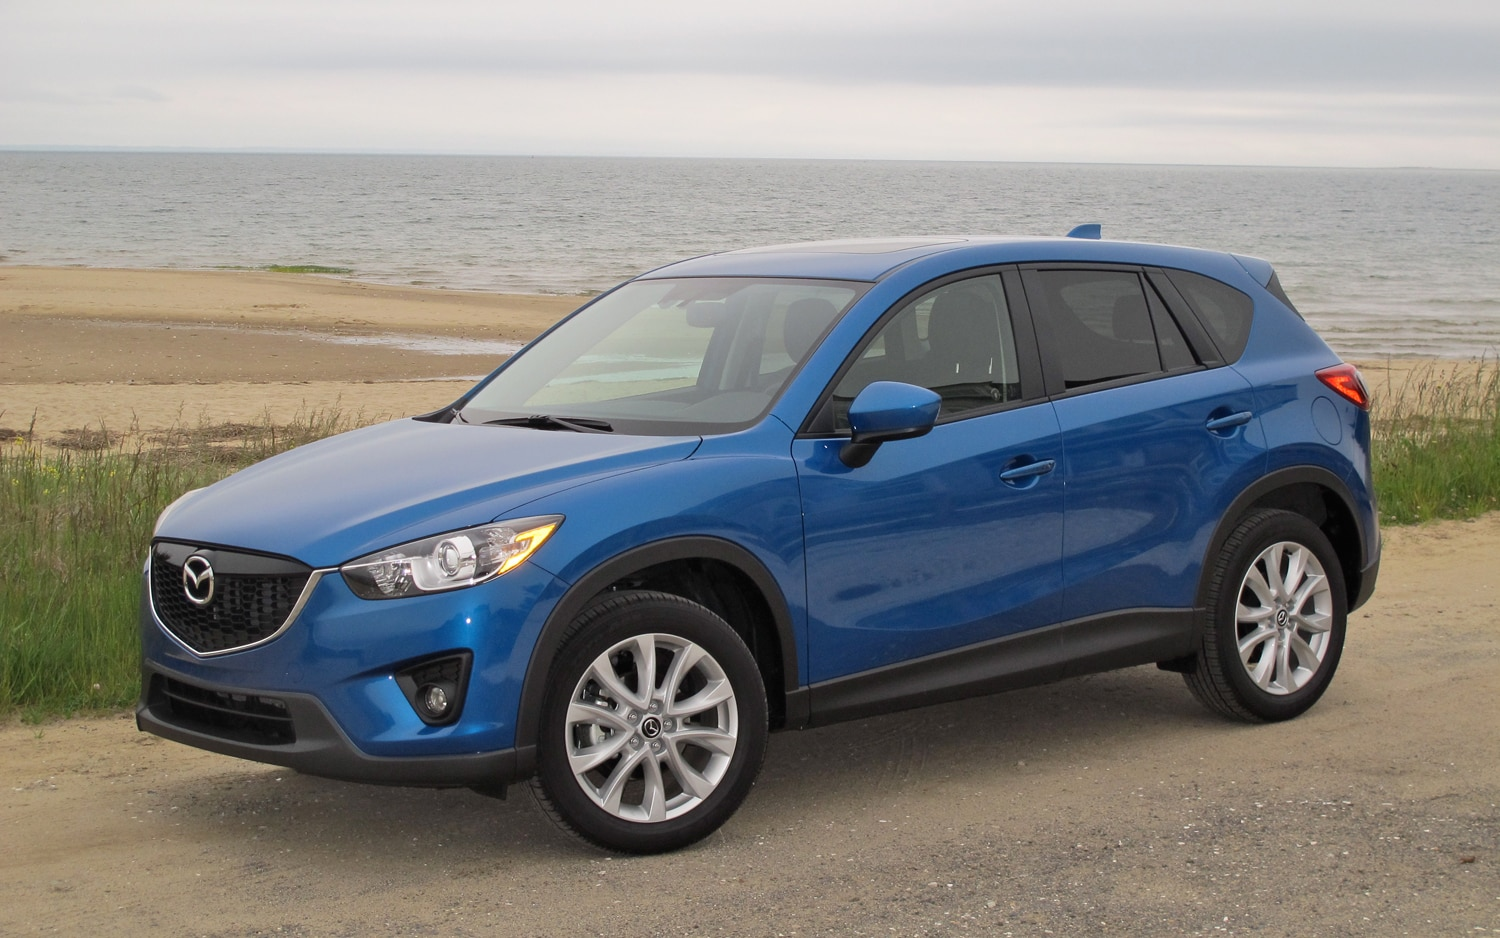 https://st.automobilemag.com/uploads/sites/11/2012/07/2013-Mazda-CX-5-Grand-Touring-front-left-side-view-2.jpg